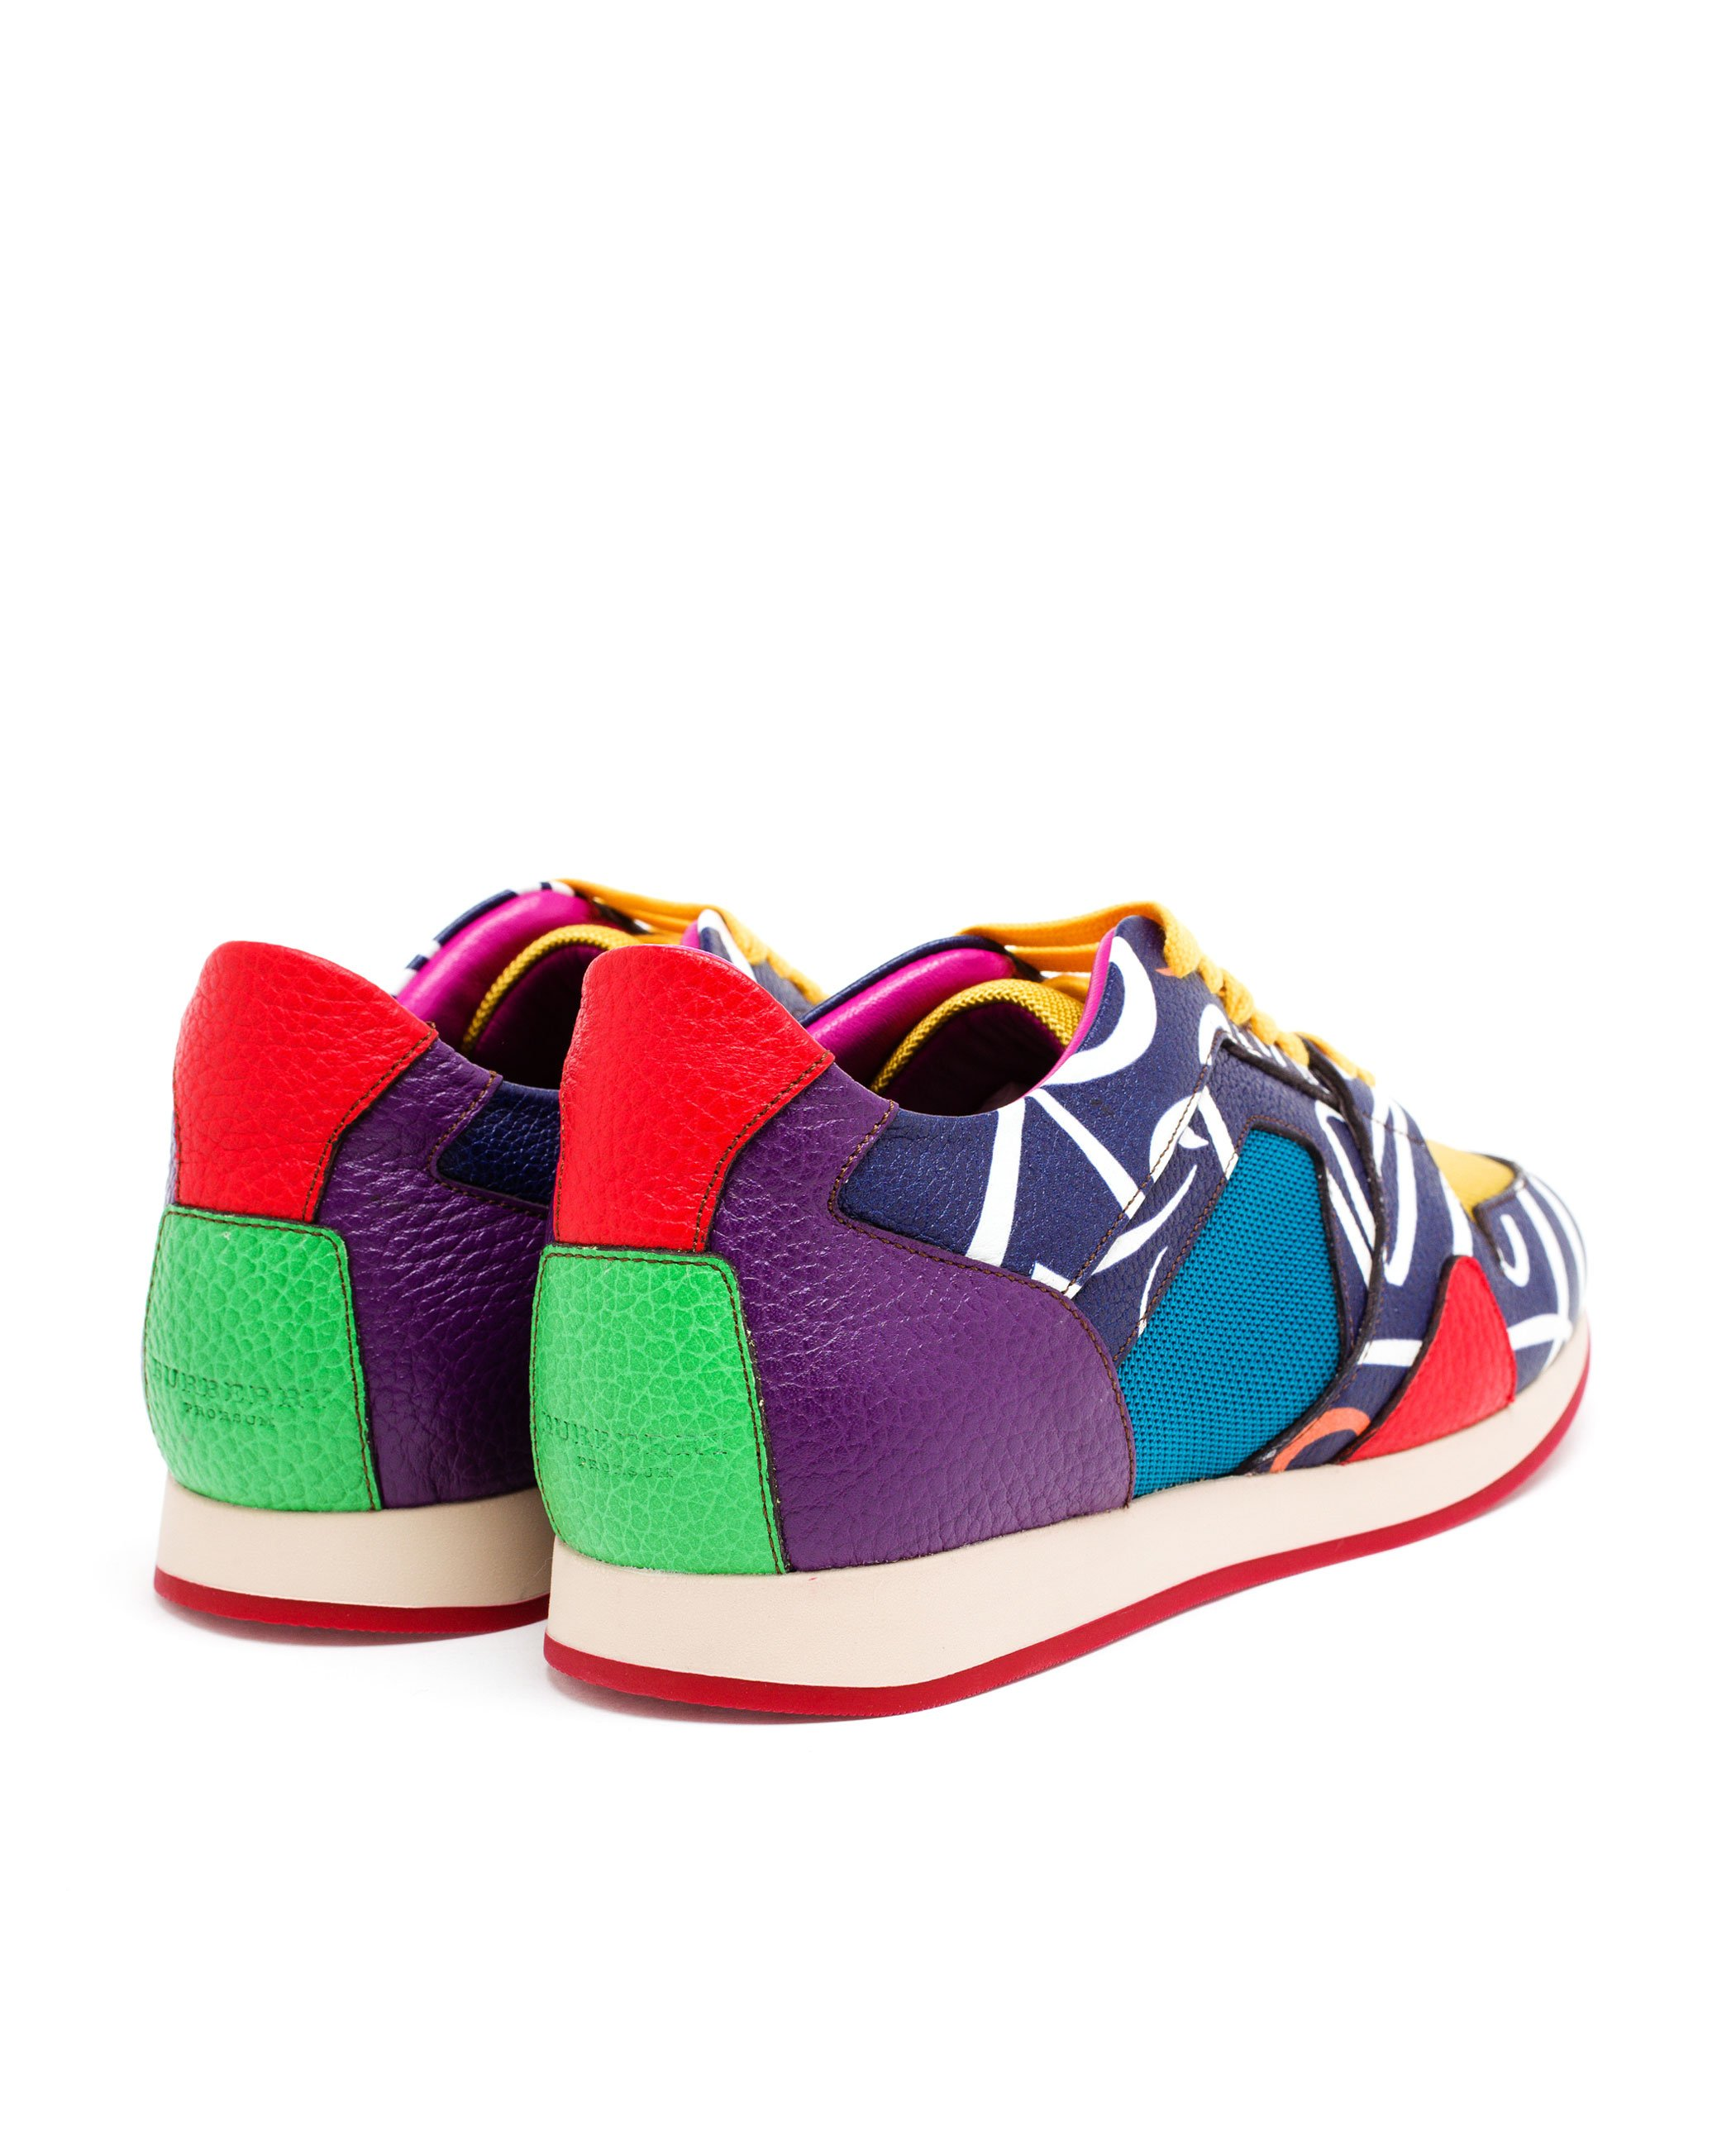 Burberry Shoes For Women Sneaker